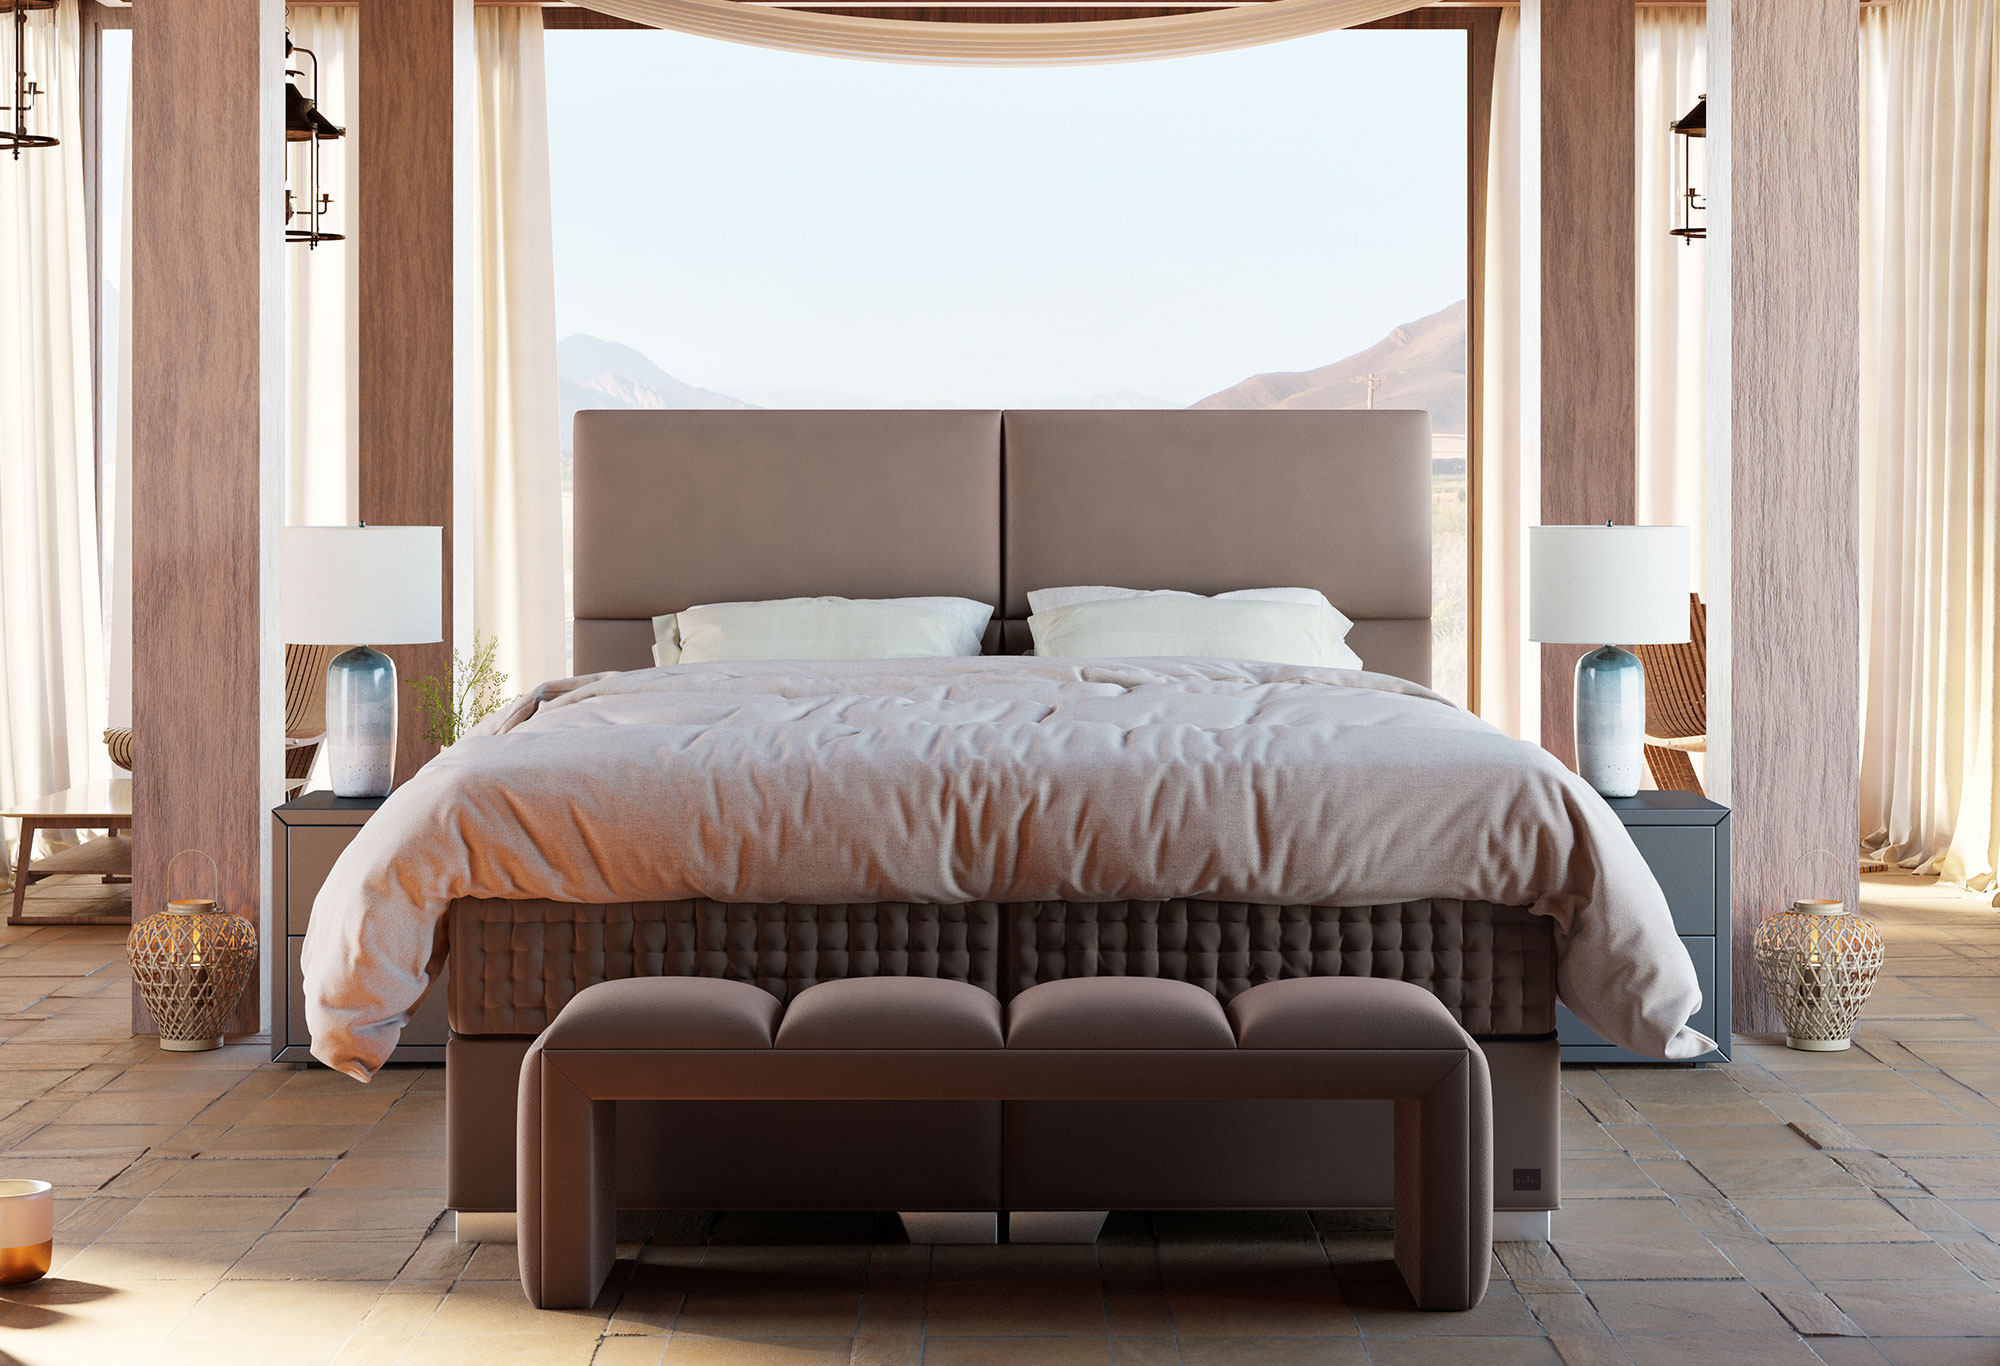 Boxspringbett Royal Serengeti Swiss Sense